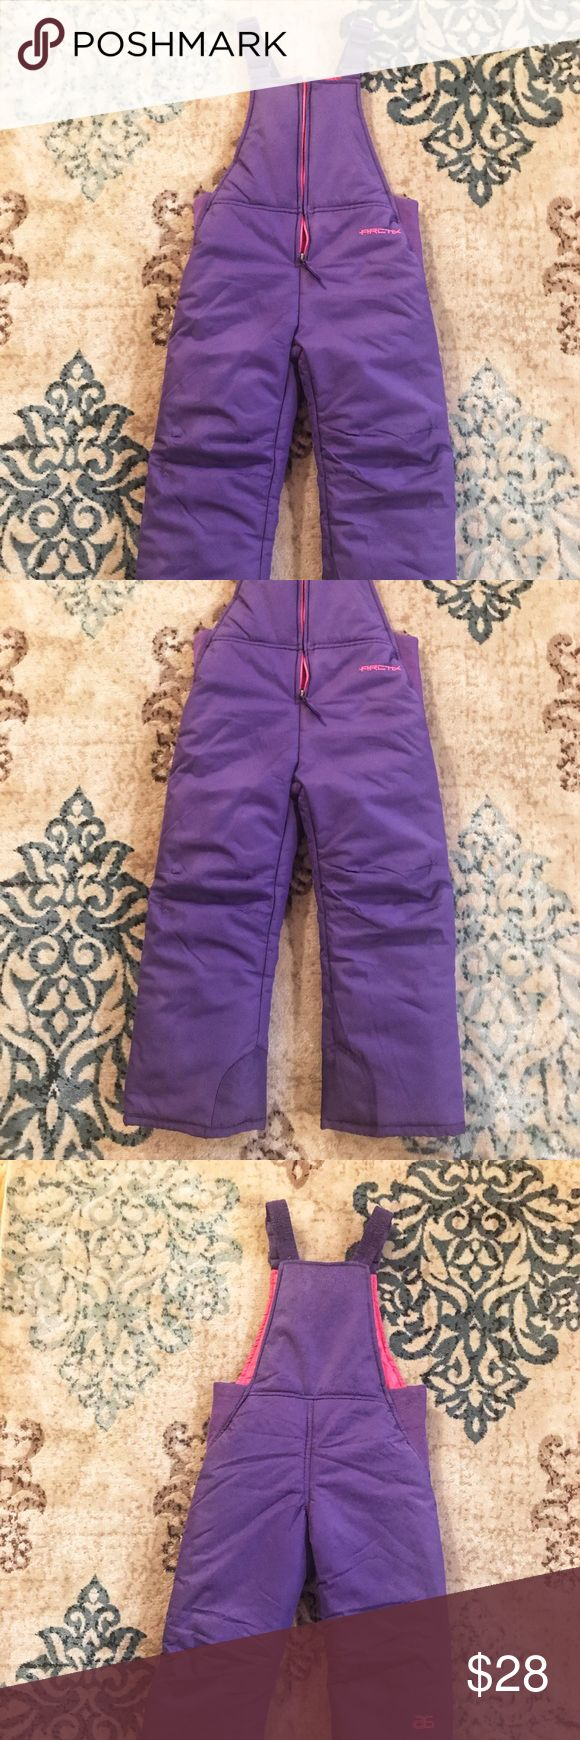 Arctix - Girls Purple Chest High Snow Bib Overalls Keep your little one warm in this purple chest high snow bib overalls from Arctix.  Adjustable comfort suspenders for the perfect fit!  Never worn as my daughter outgrew them by this winter! Arctix Jackets & Coats